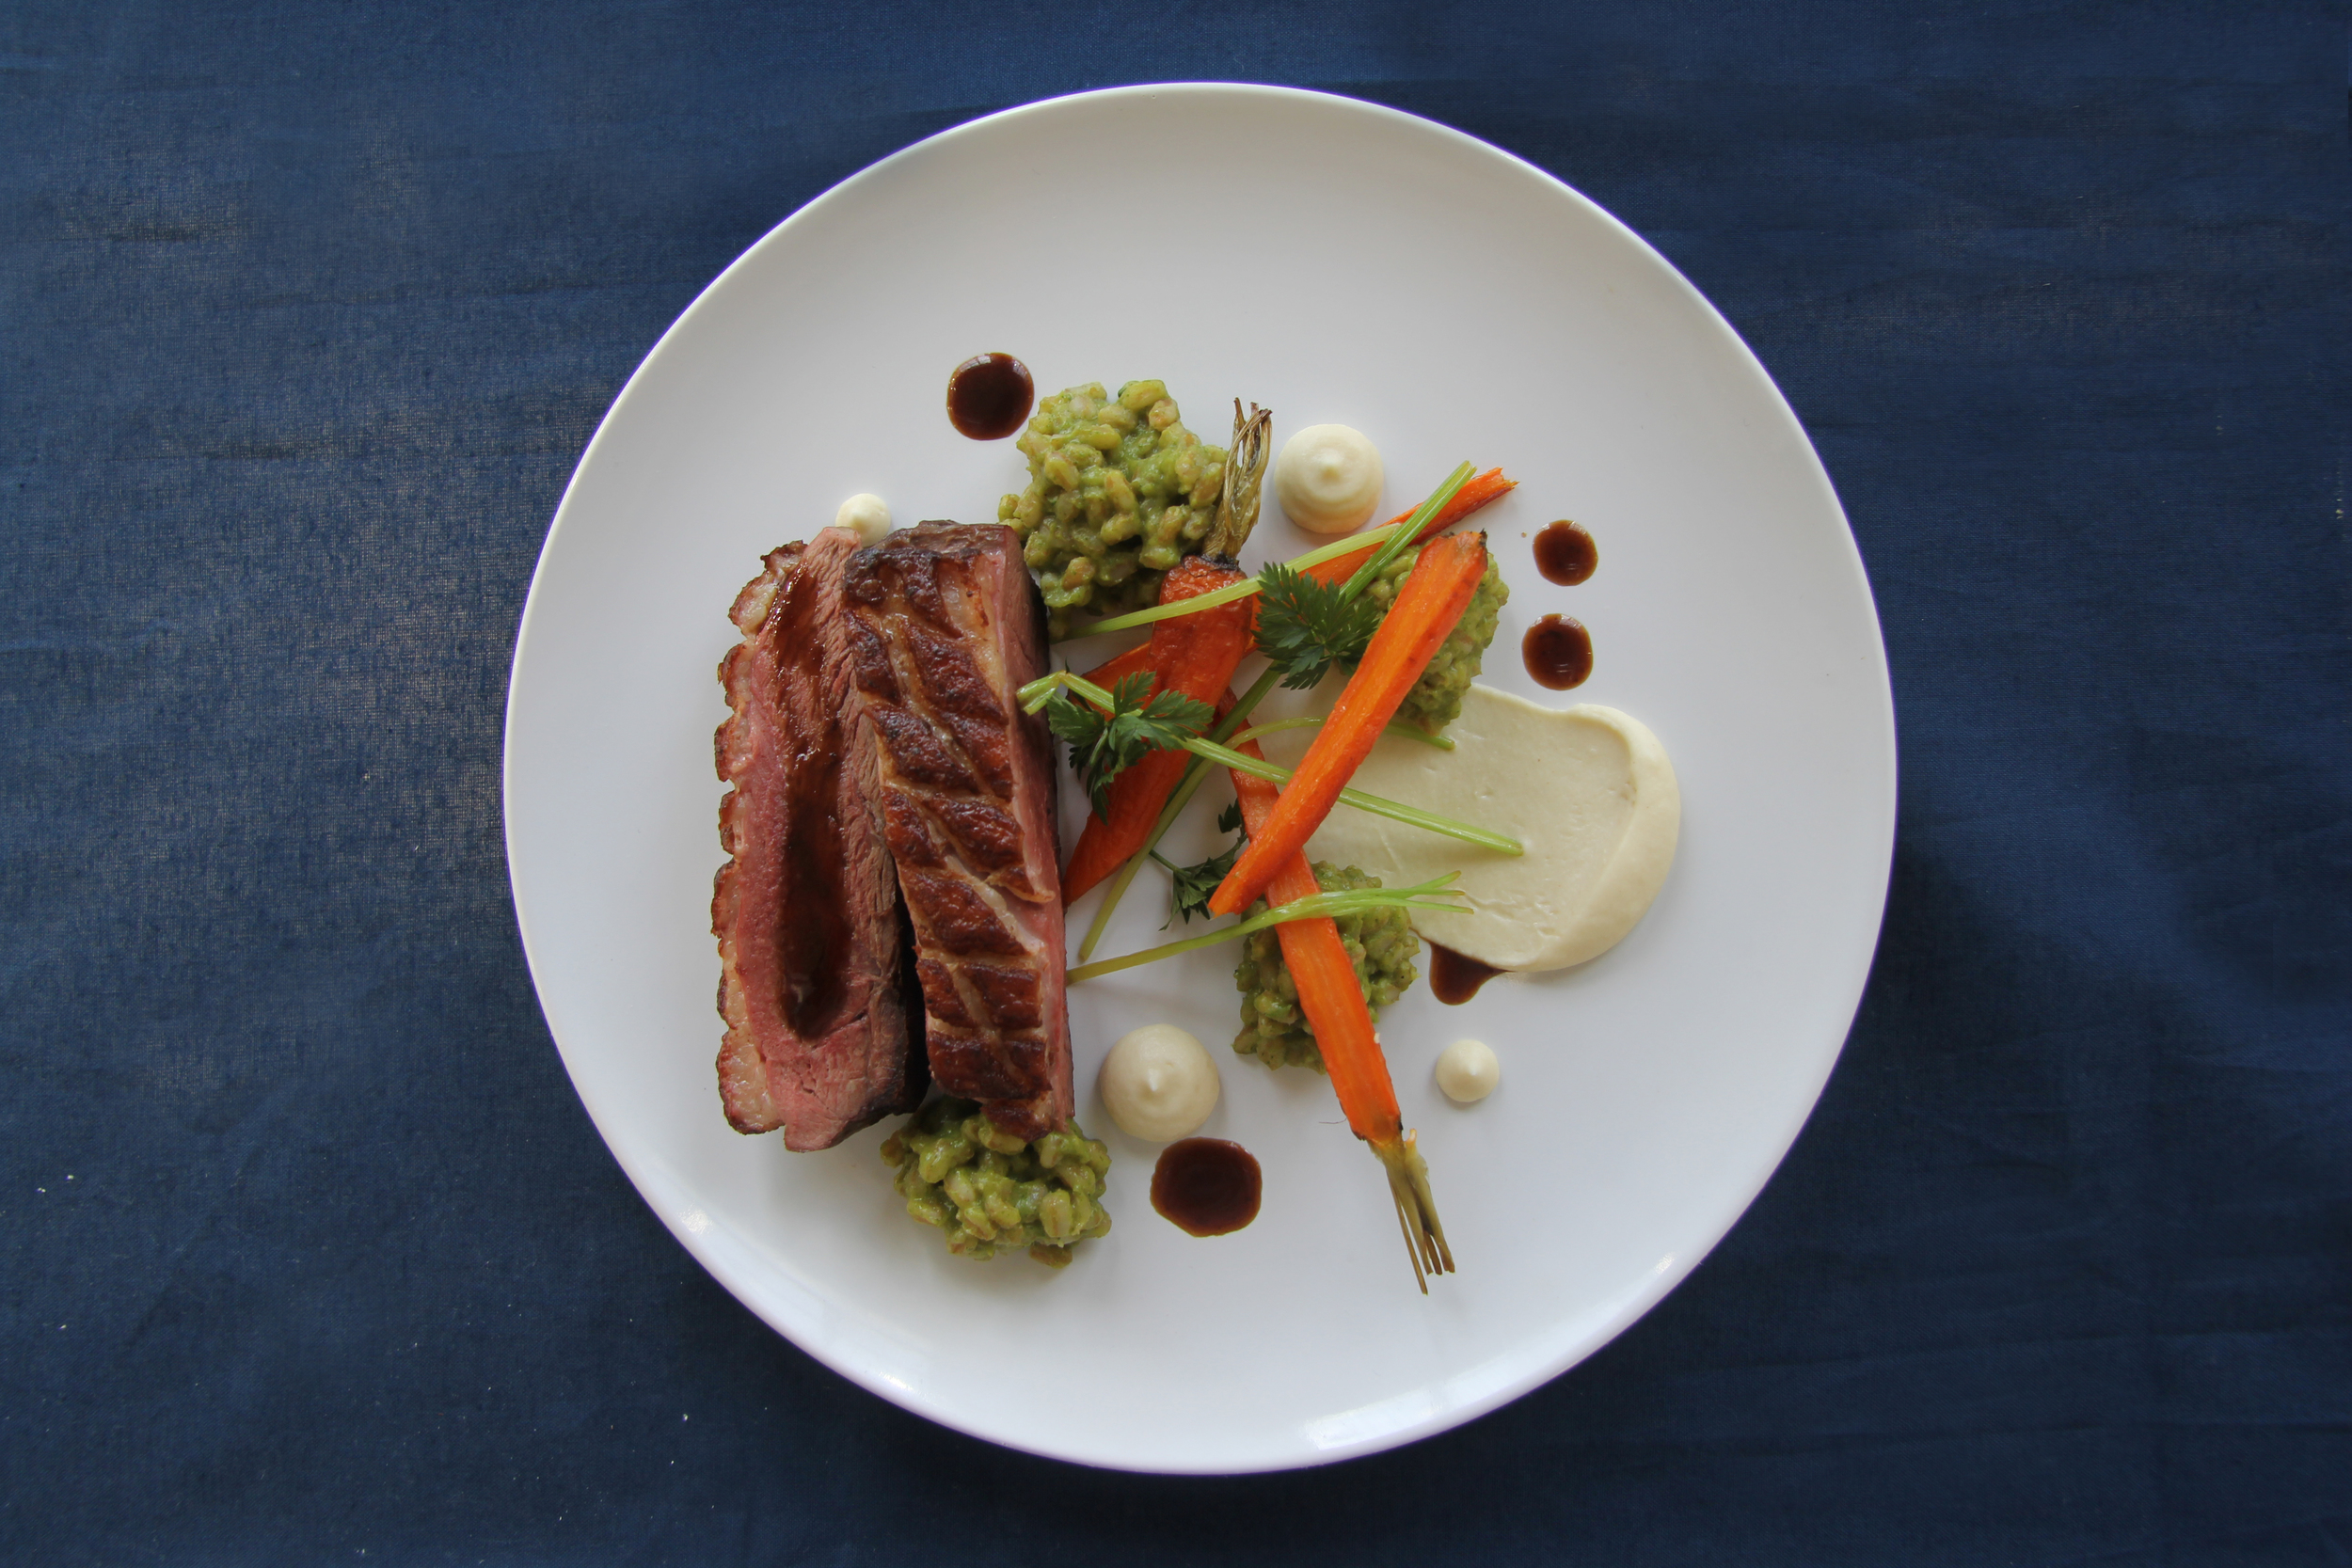 Roasted Duck Breast. Herb Farro Risotto. Celery Root Purée. 2 hour Roasted Carrots in duck fat. Black Garlic Sauce.